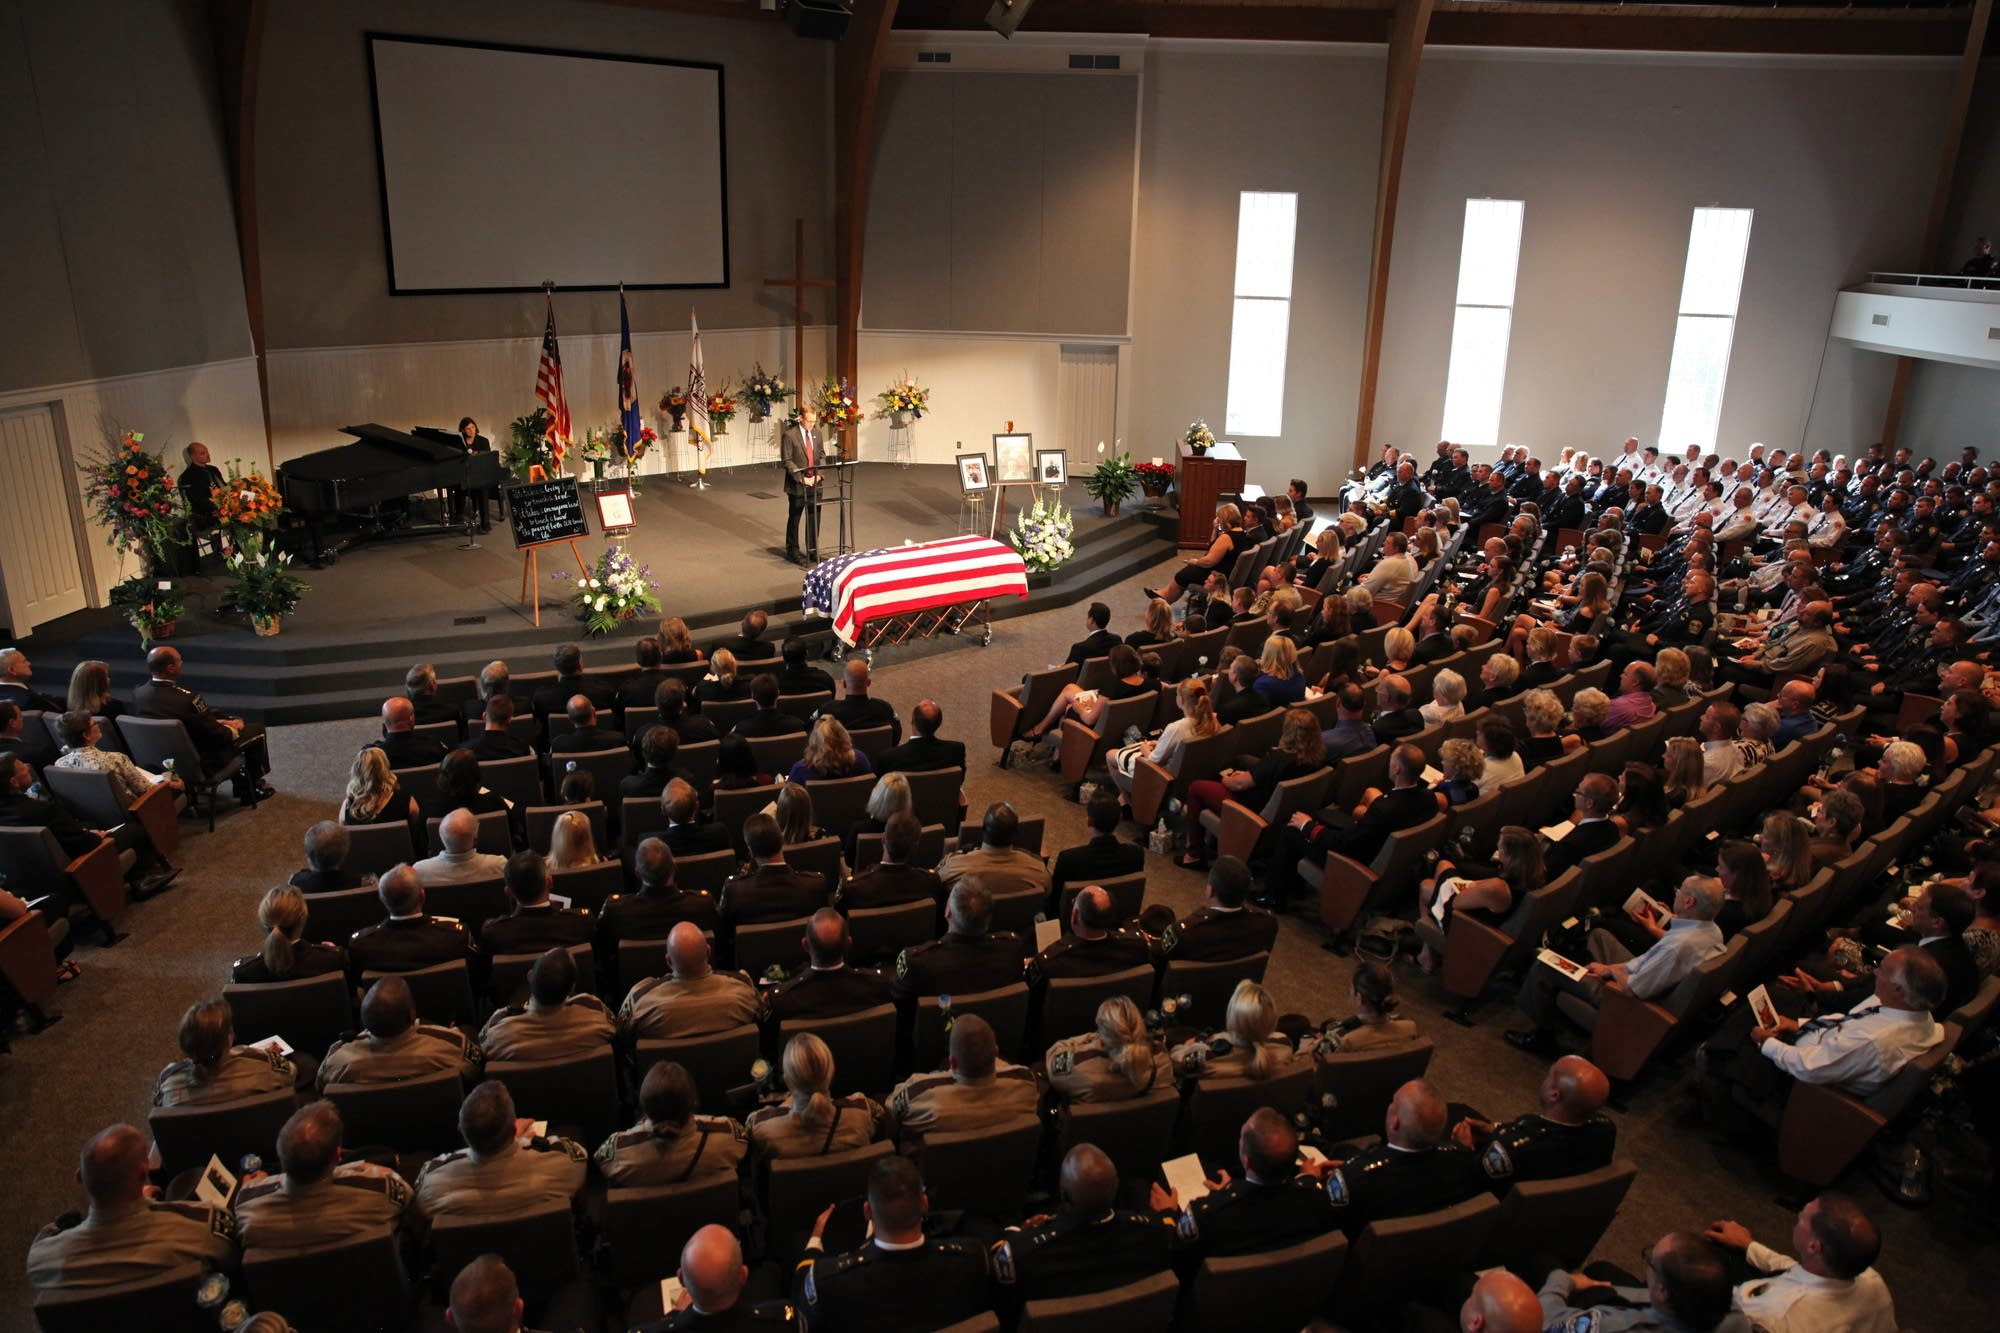 It was a morning of solemn ceremony at the Wayzata Free Church.